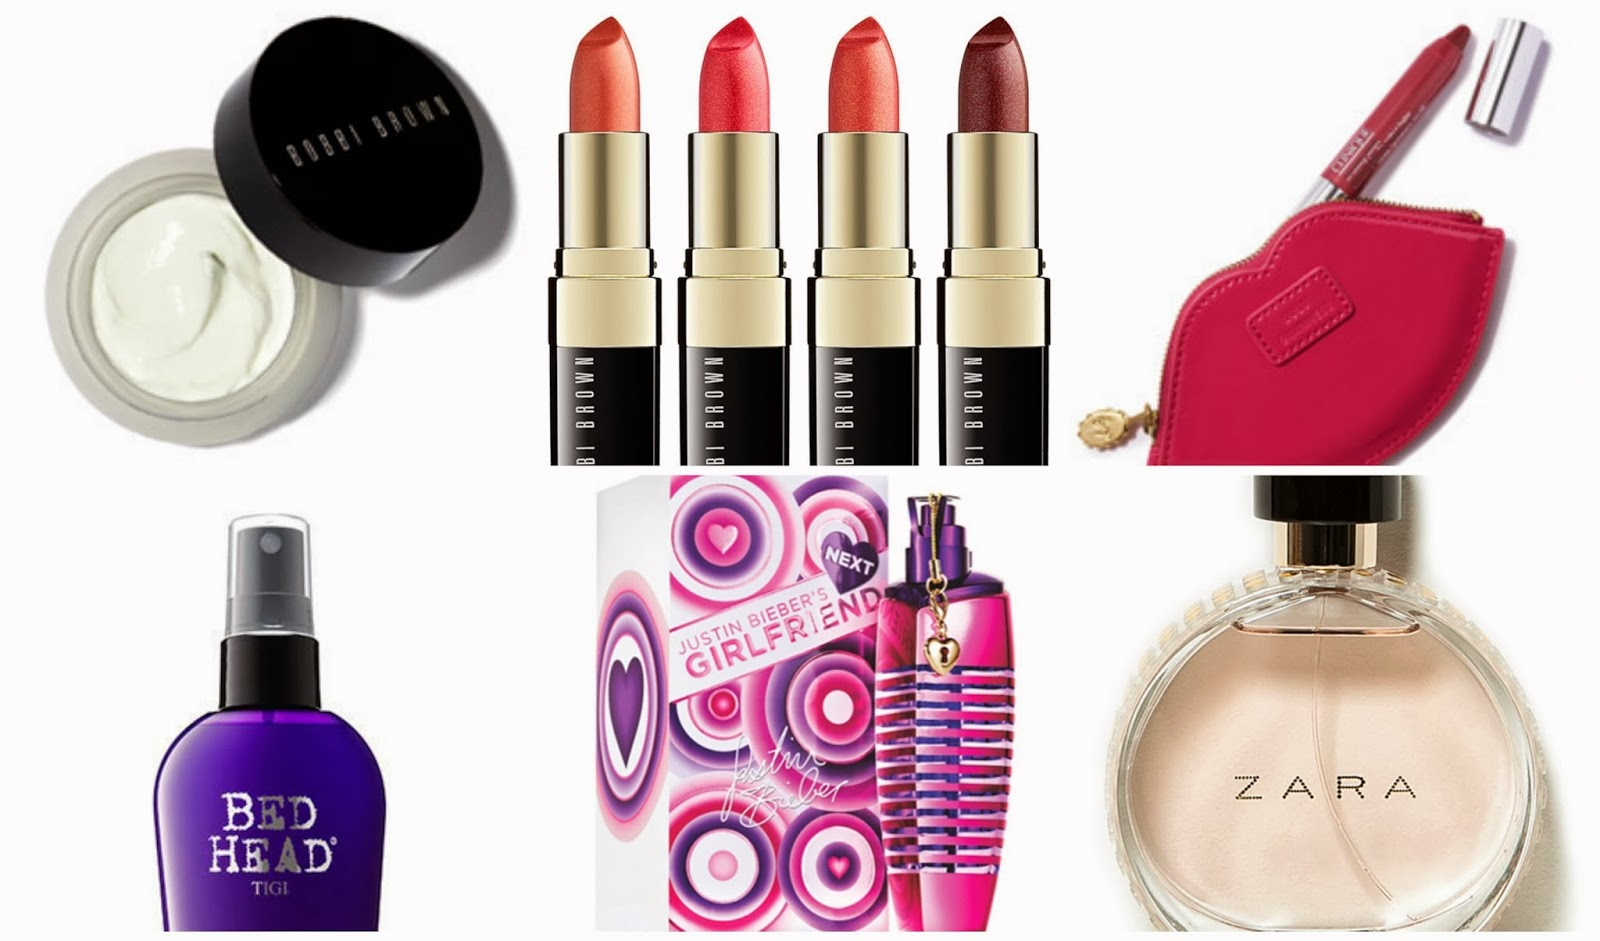 The Daily Beauty Report (31.01.14)